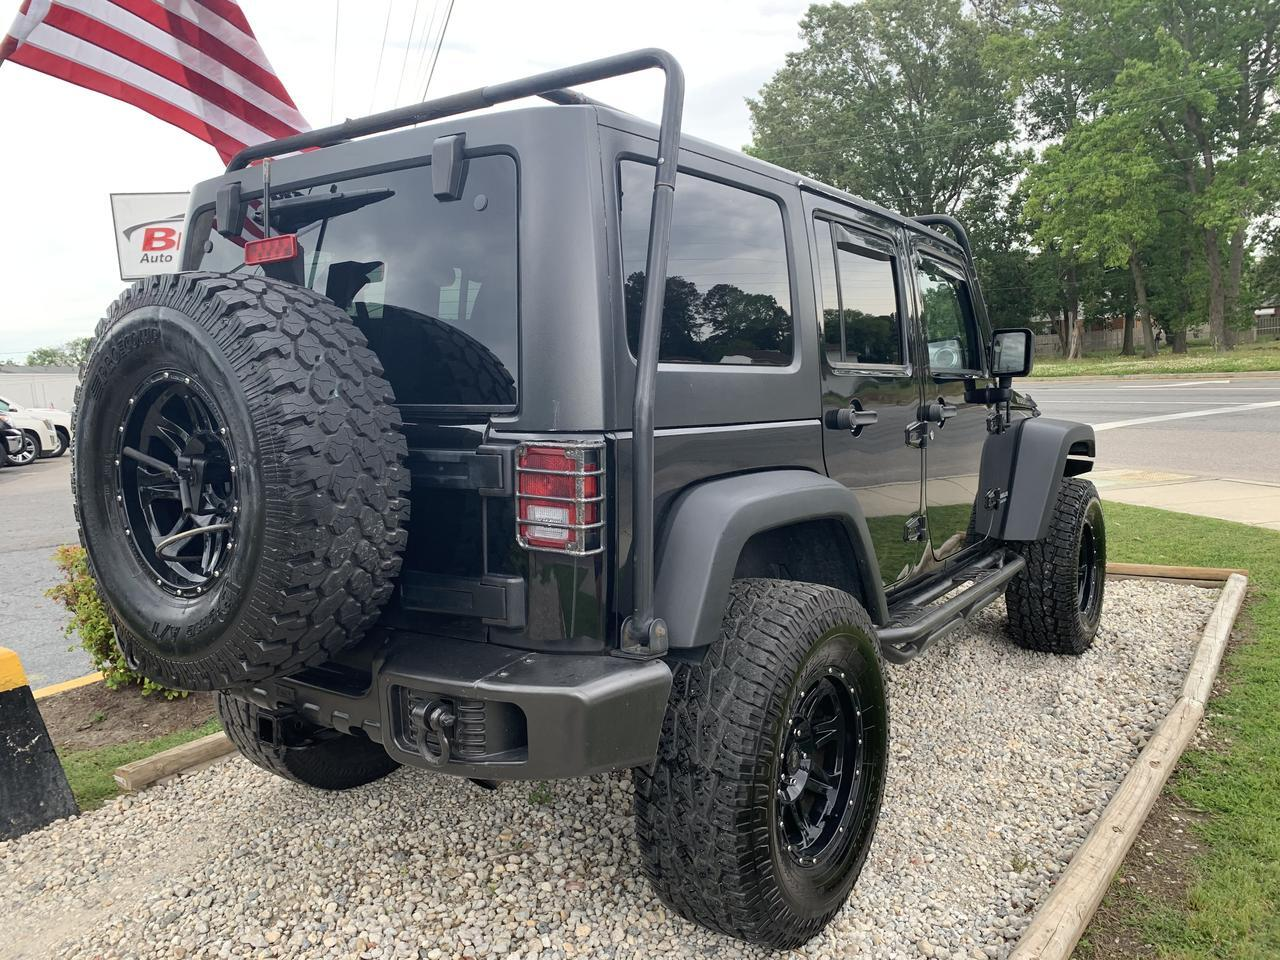 2011 JEEP WRANGLER UNLIMITED RUBICON 4X4, WARRANTY, MANUAL, LIFTED, HARD/SOFT TOP, BLUETOOTH, 1 OWNER! Norfolk VA